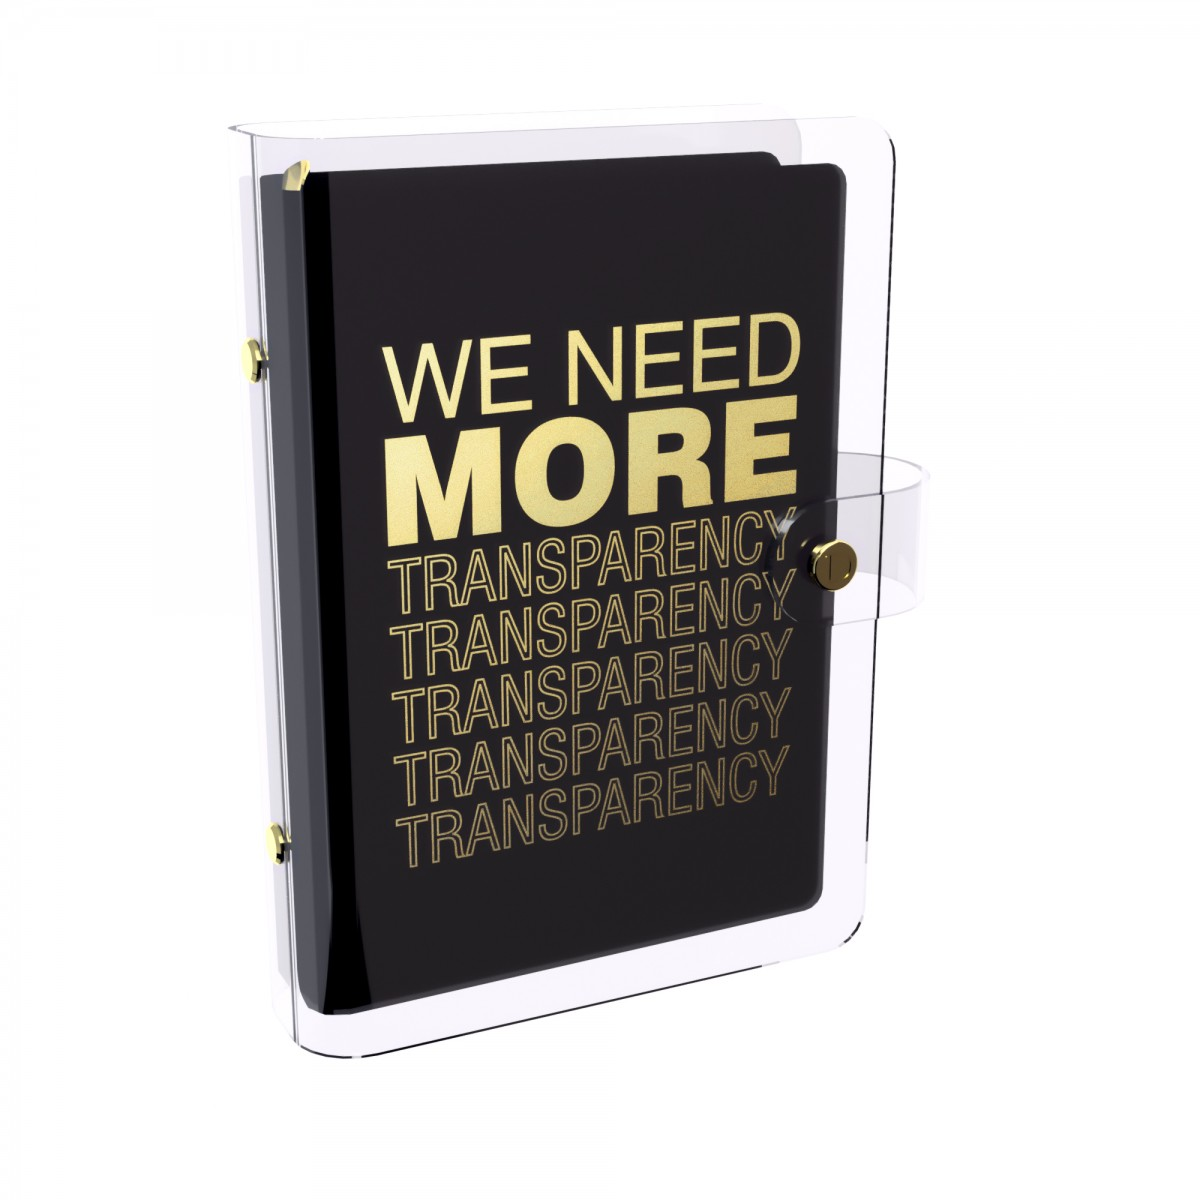 DISCAGENDA CLARITY CLEAR PVC PLANNER COVER - WE NEED MORE TRANSPARENCY (BLACK), RINGBOUND, PERSONAL SIZE